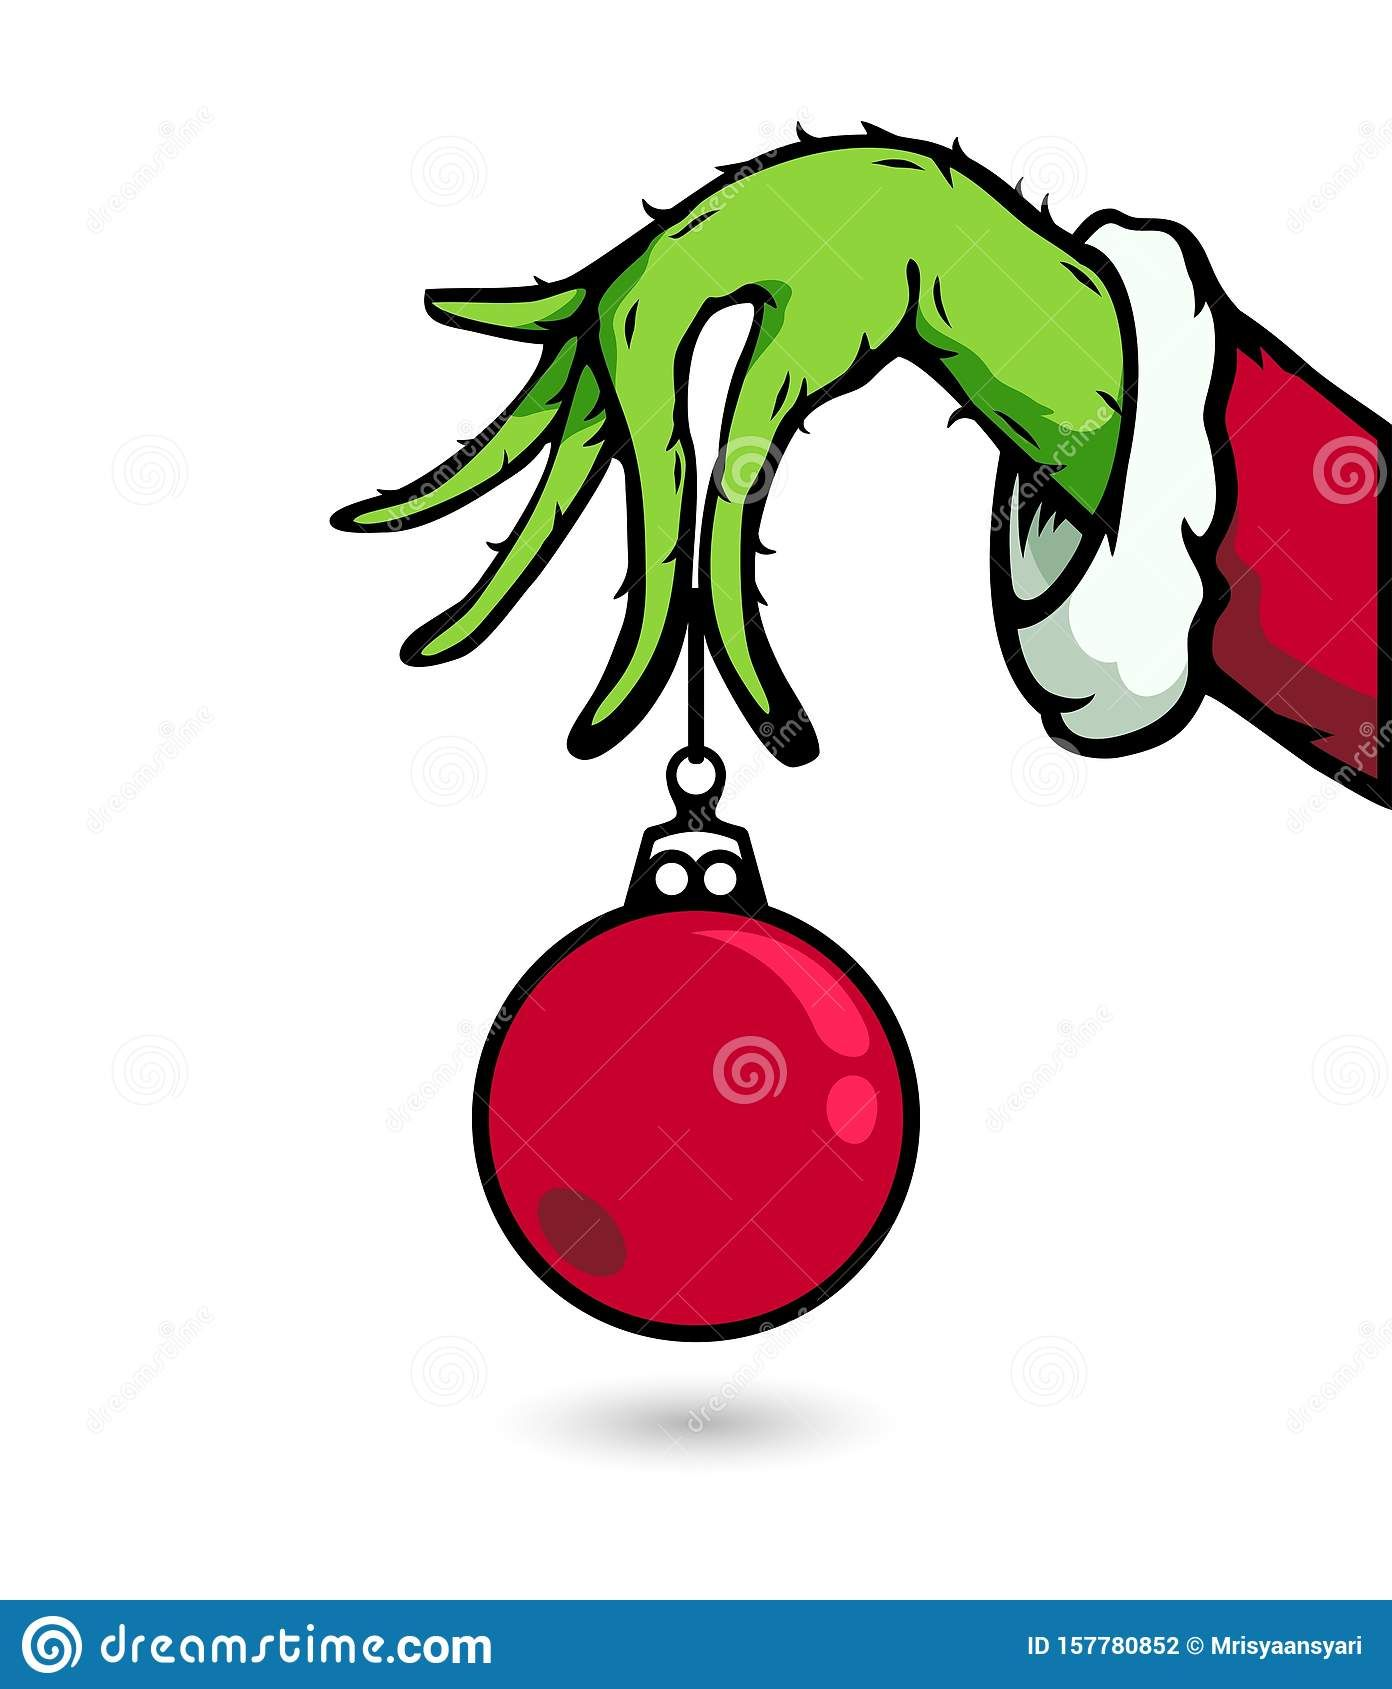 Holidays and Christmas Illustrations & Vectors